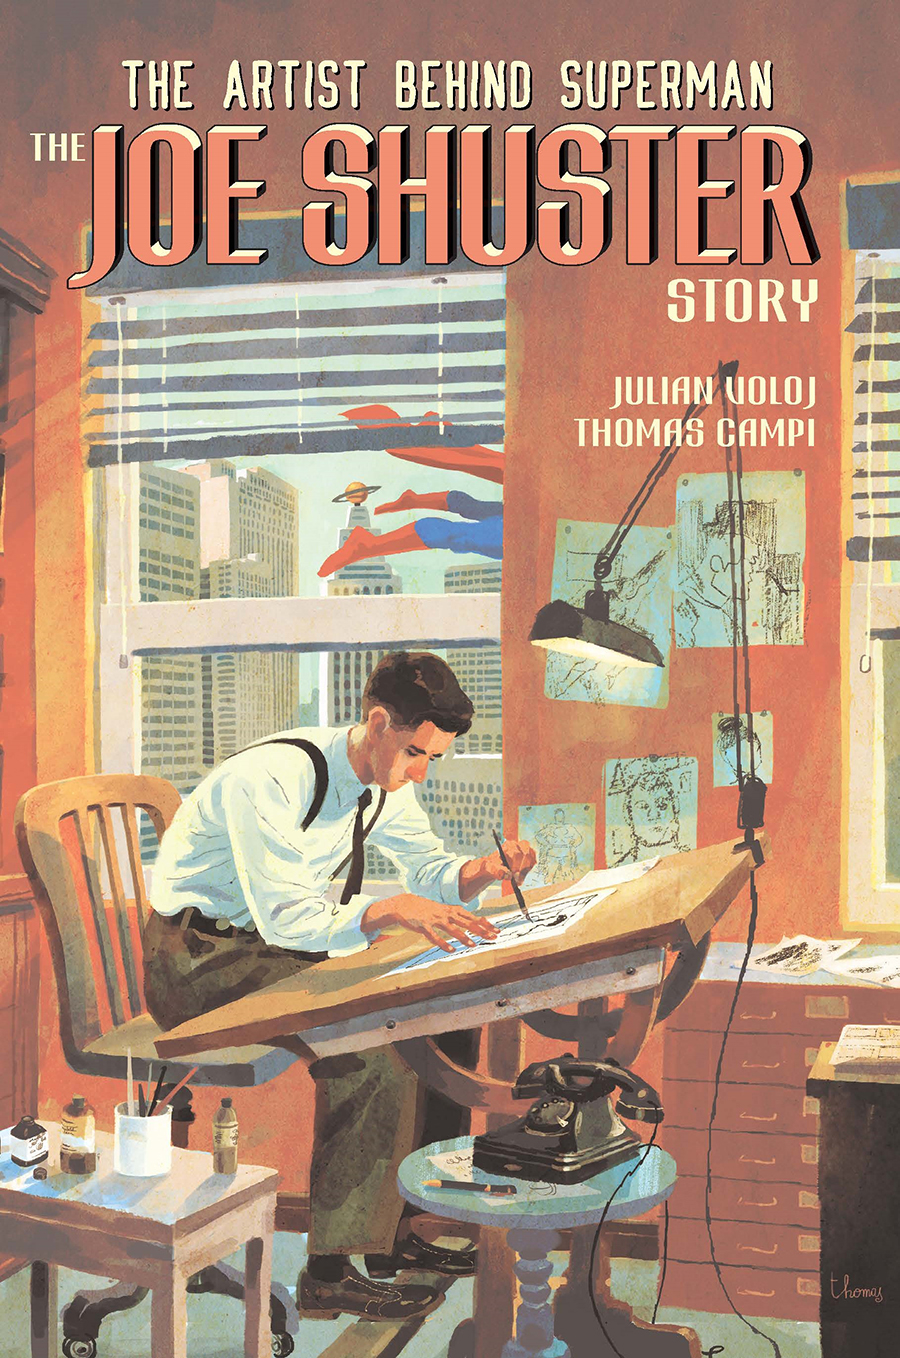 THE ARTIST BEHIND SUPERMAN THE JOE SHUSTER STORY GN